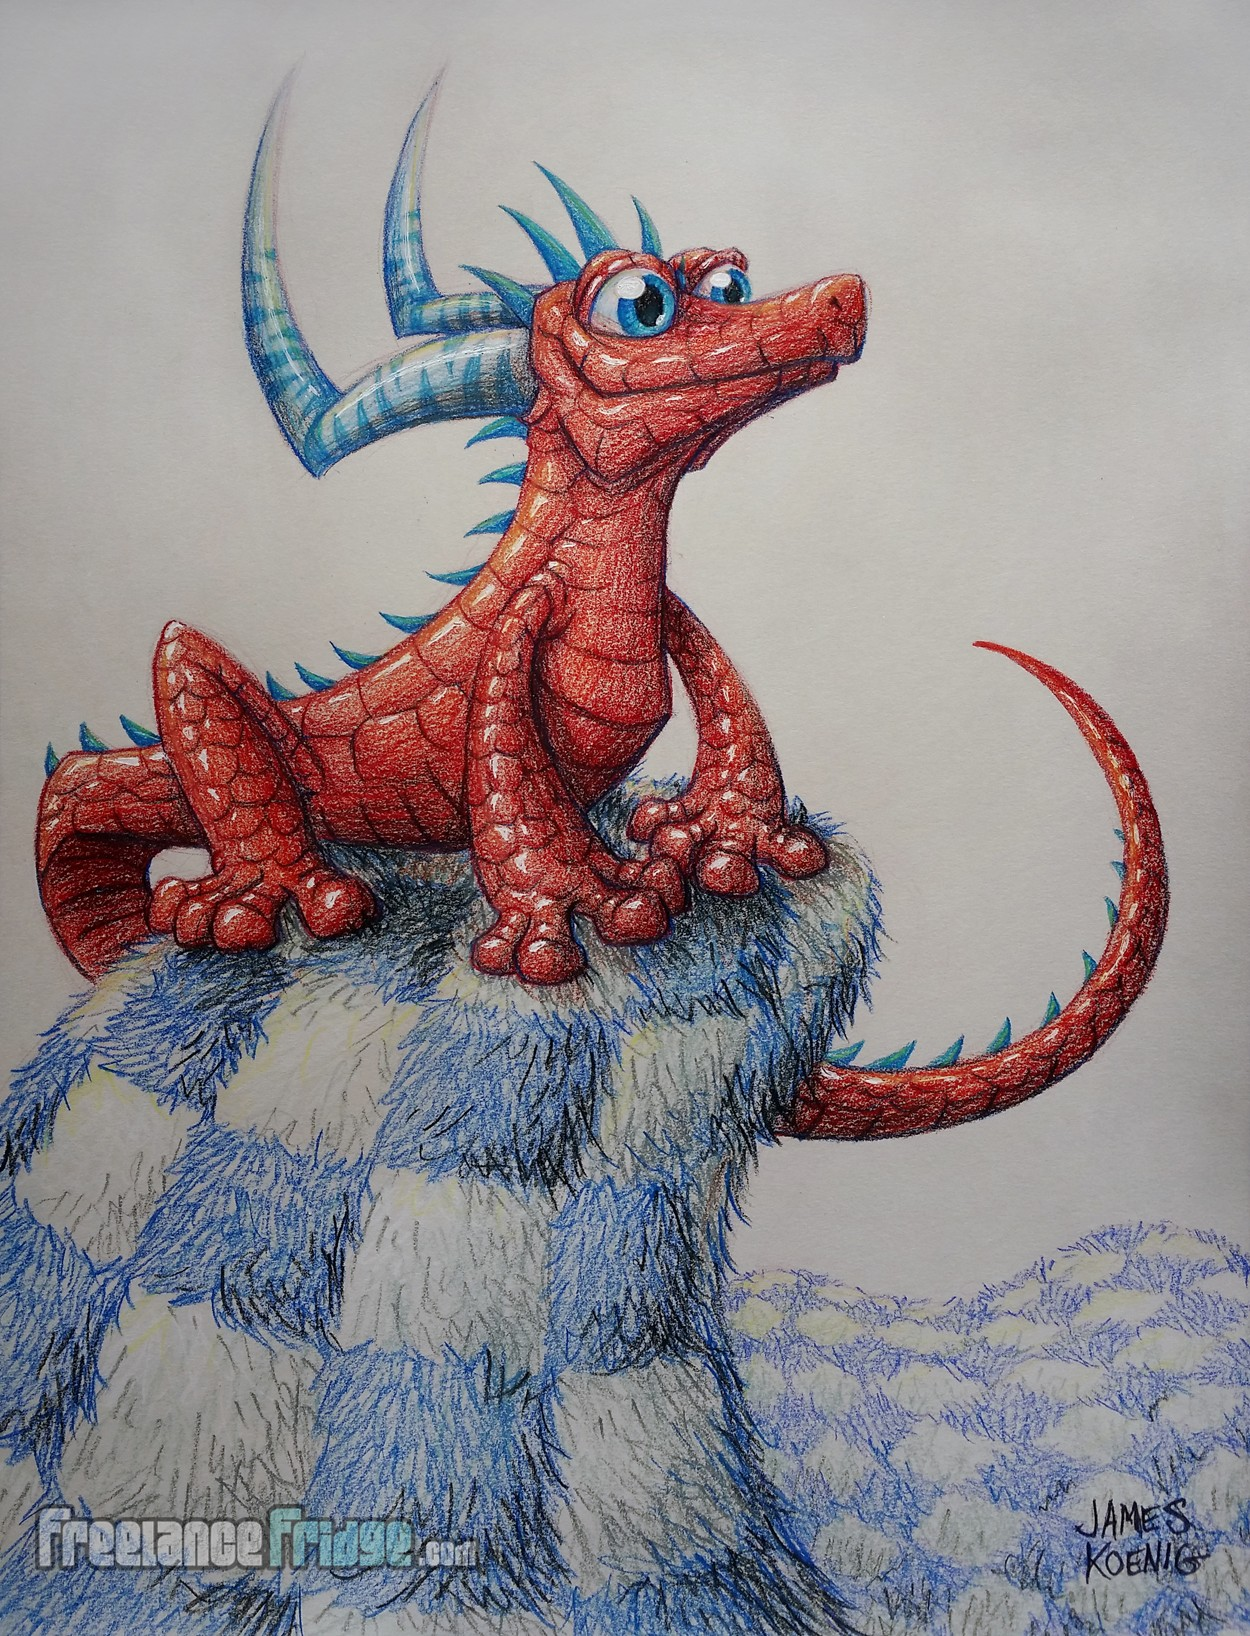 New Updated Redrawn Cartoon Colored Pencil Drawing of Red Lizard Creature with Horns